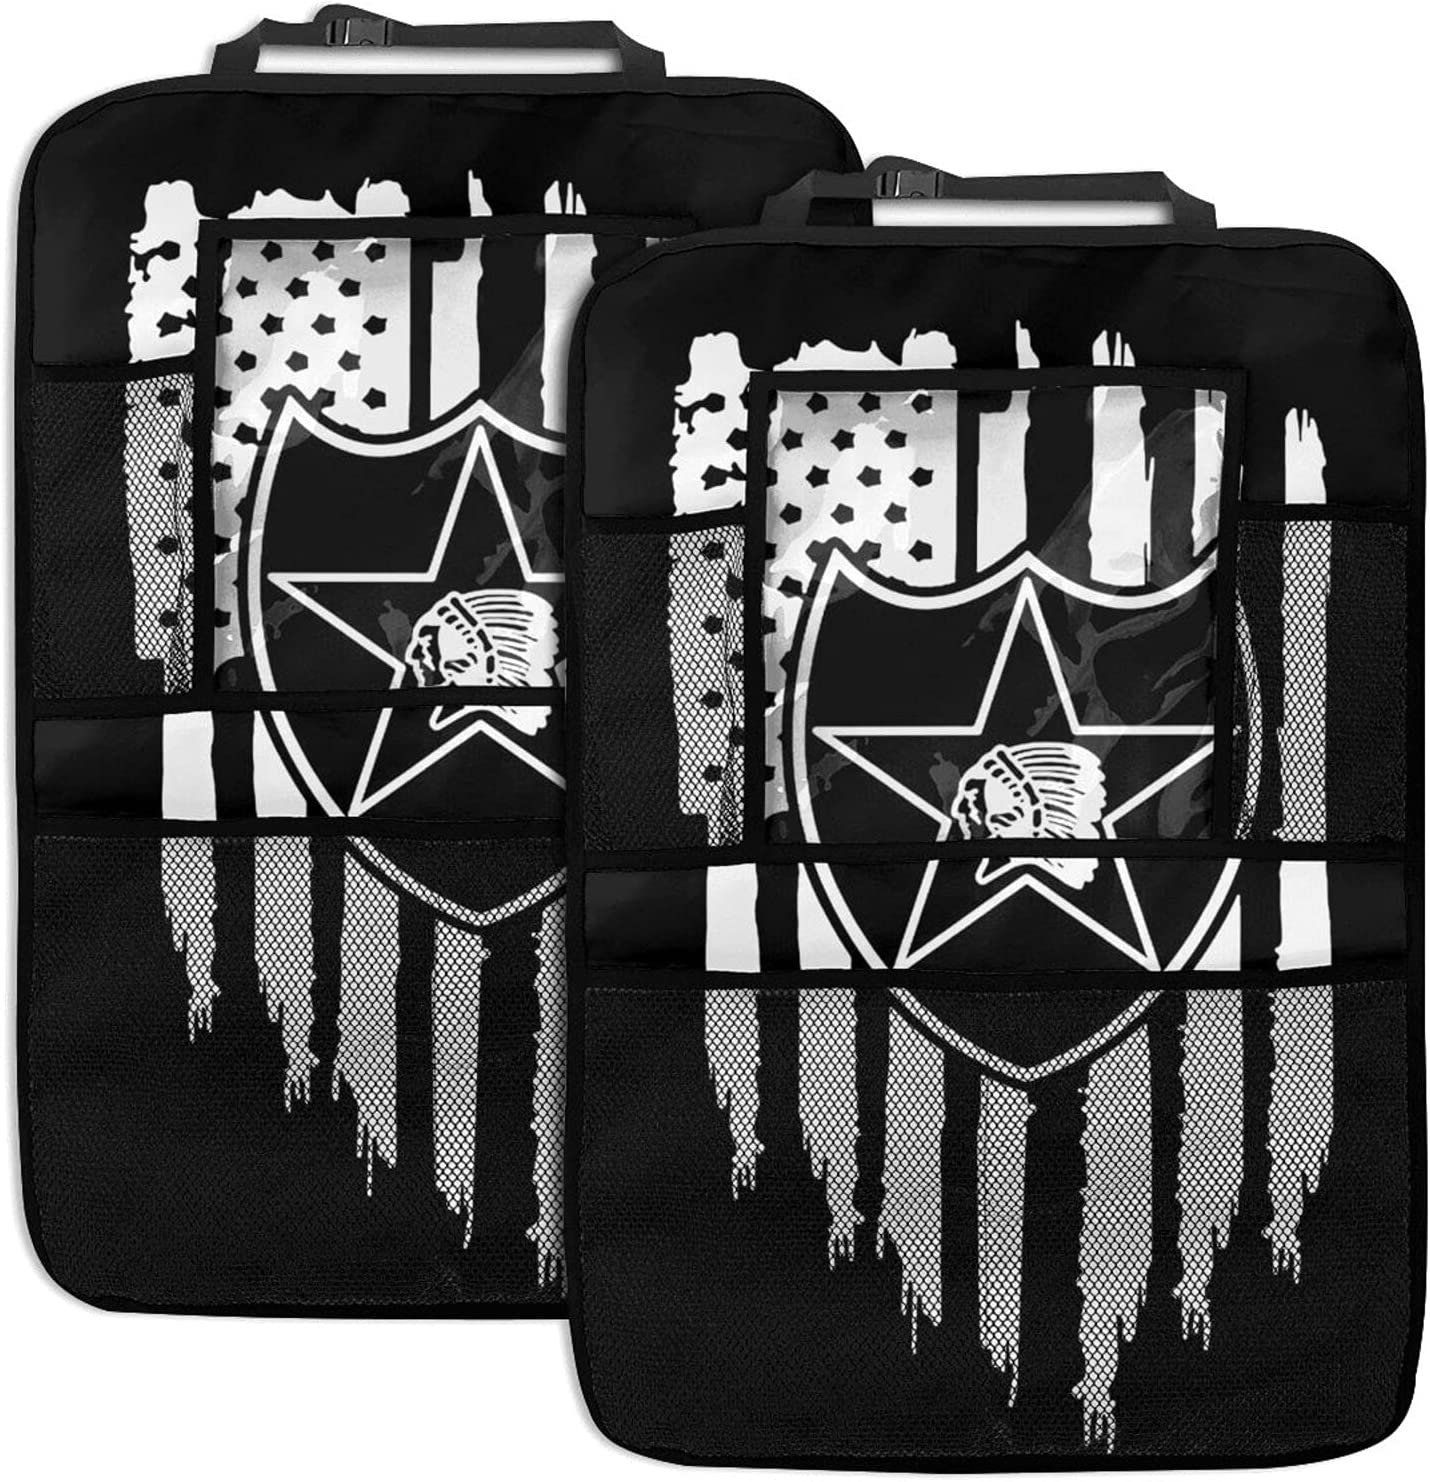 Us Army 2nd Infantry Division Car Oakland Mall Organizer Omaha Mall Backseat Veteran 2pc